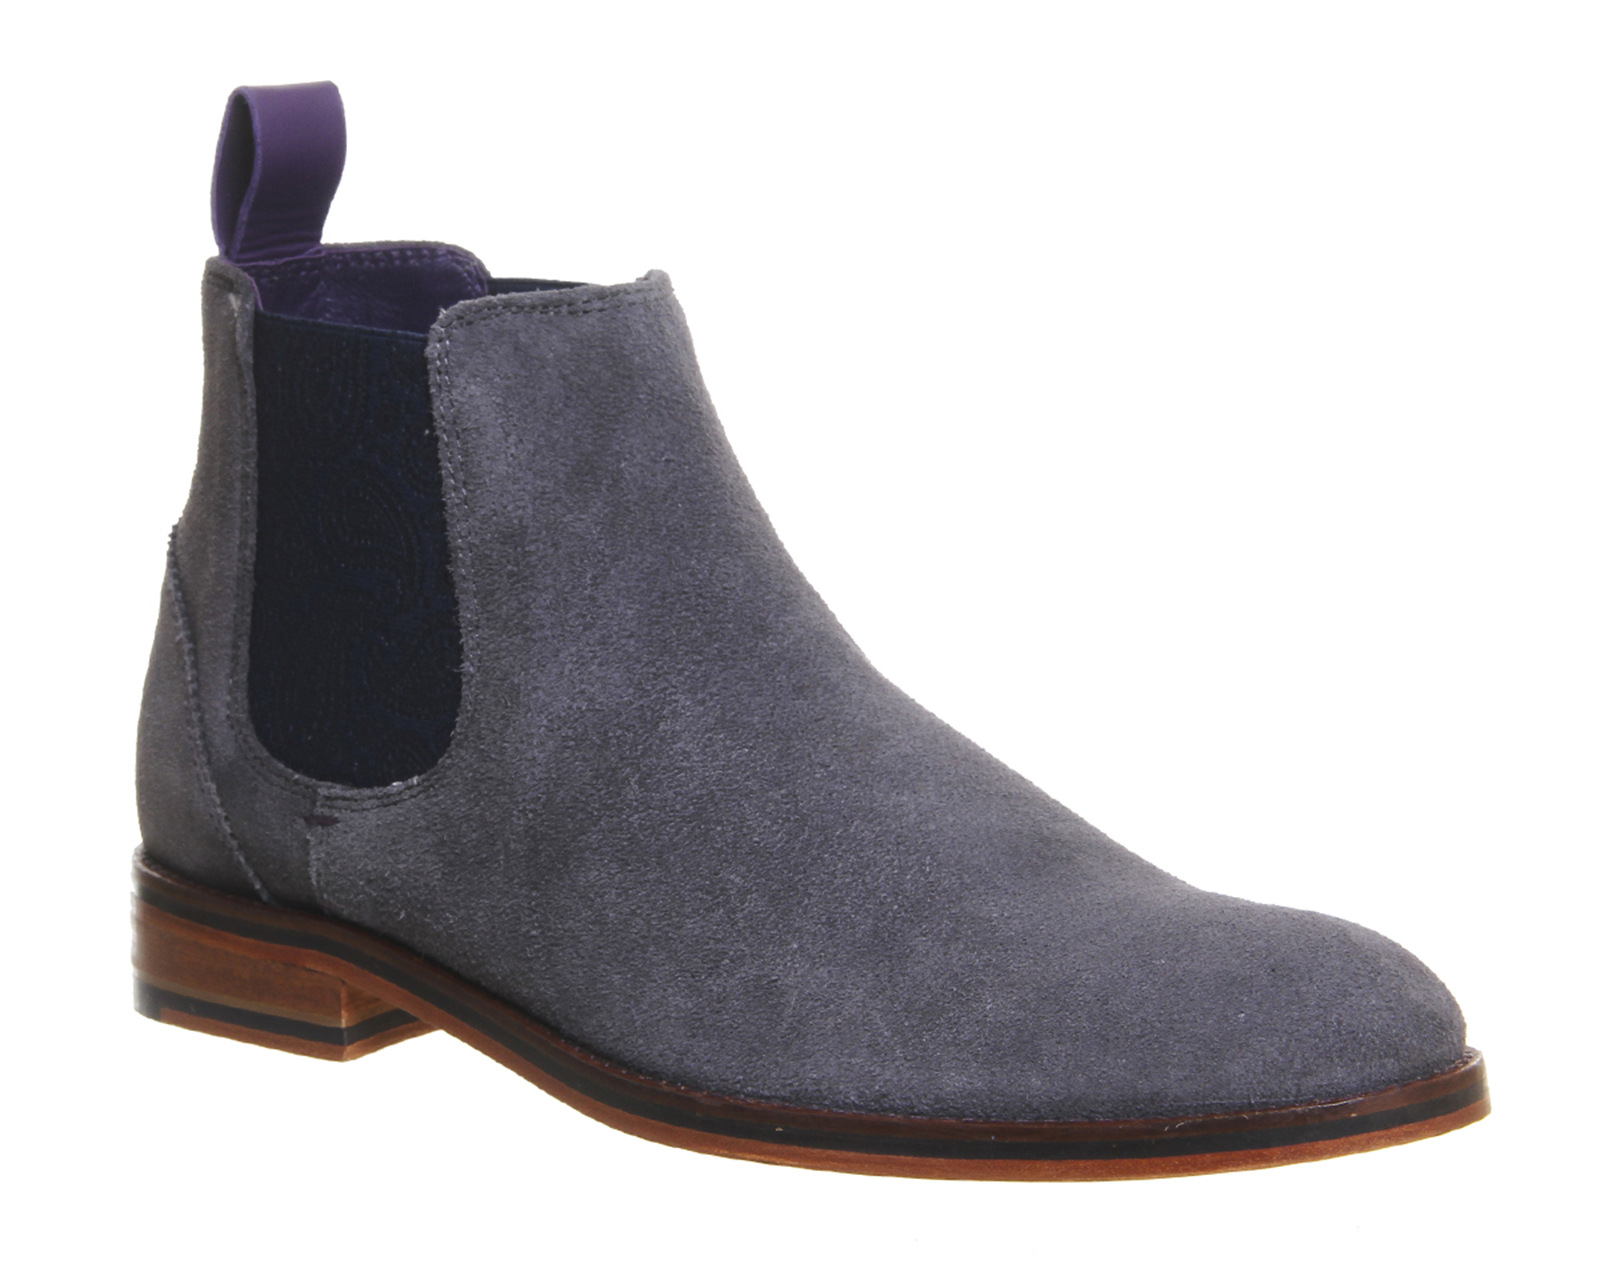 Ted Baker Boots Mens Shoes